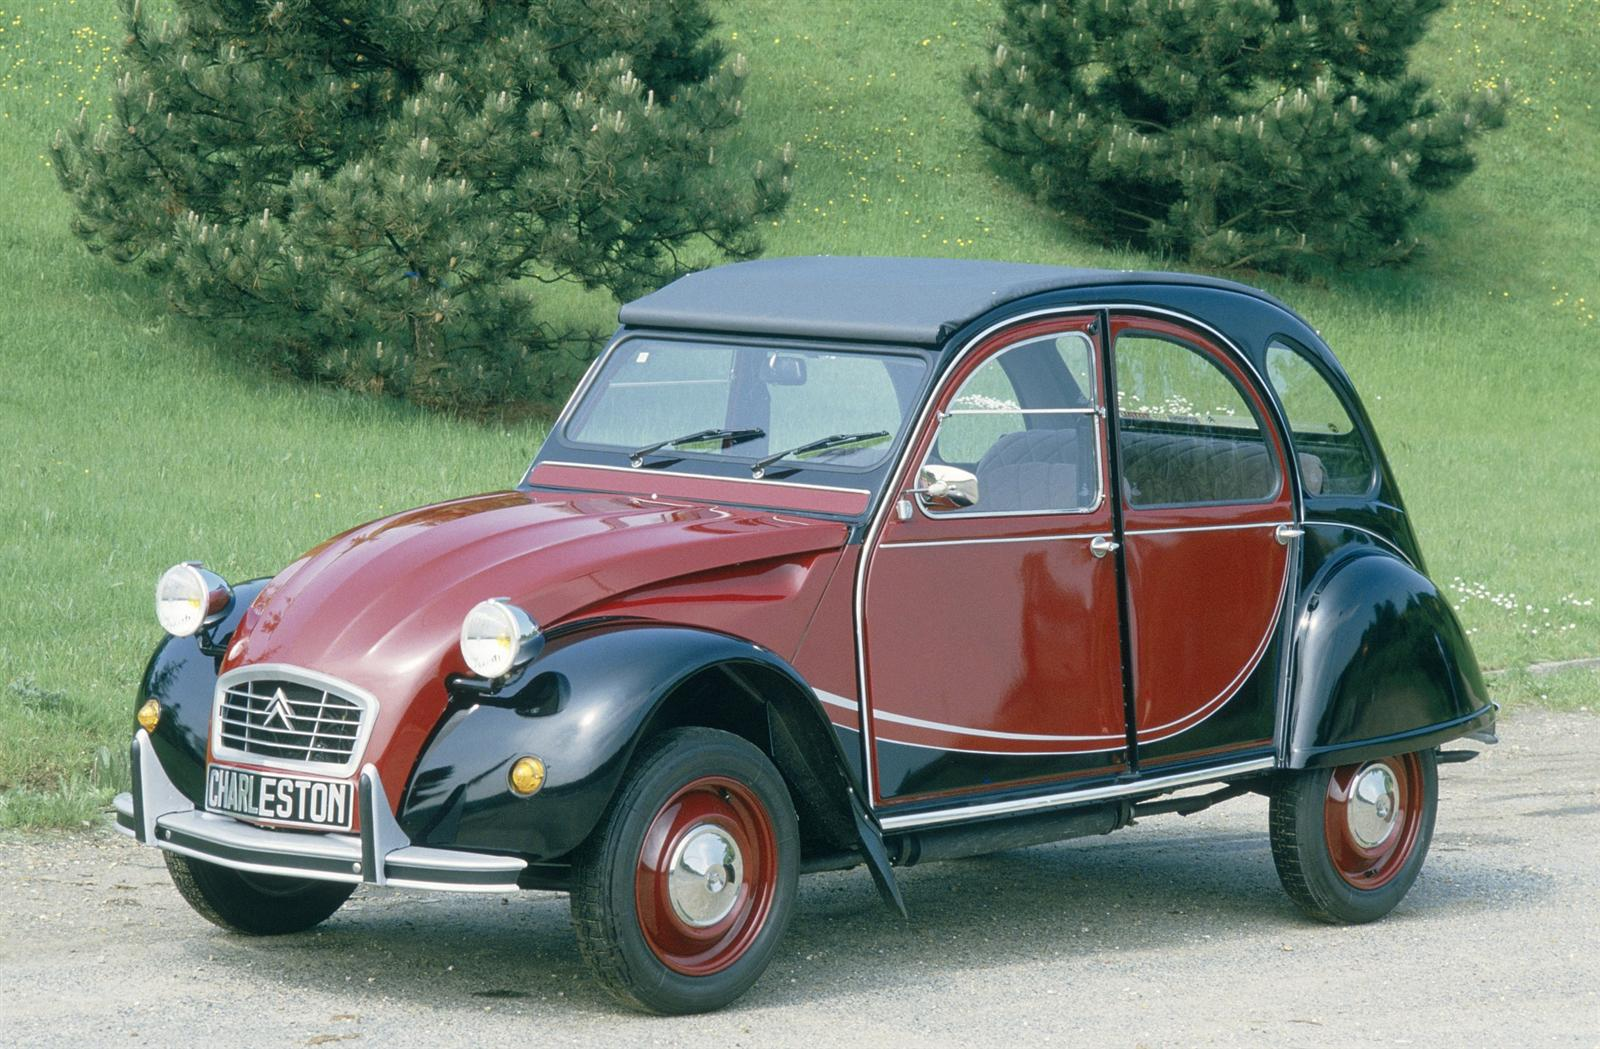 1983 citroen 2cv charleston desktop wallpaper and high resolution images 1600x1049 1983 citroen 2. Black Bedroom Furniture Sets. Home Design Ideas